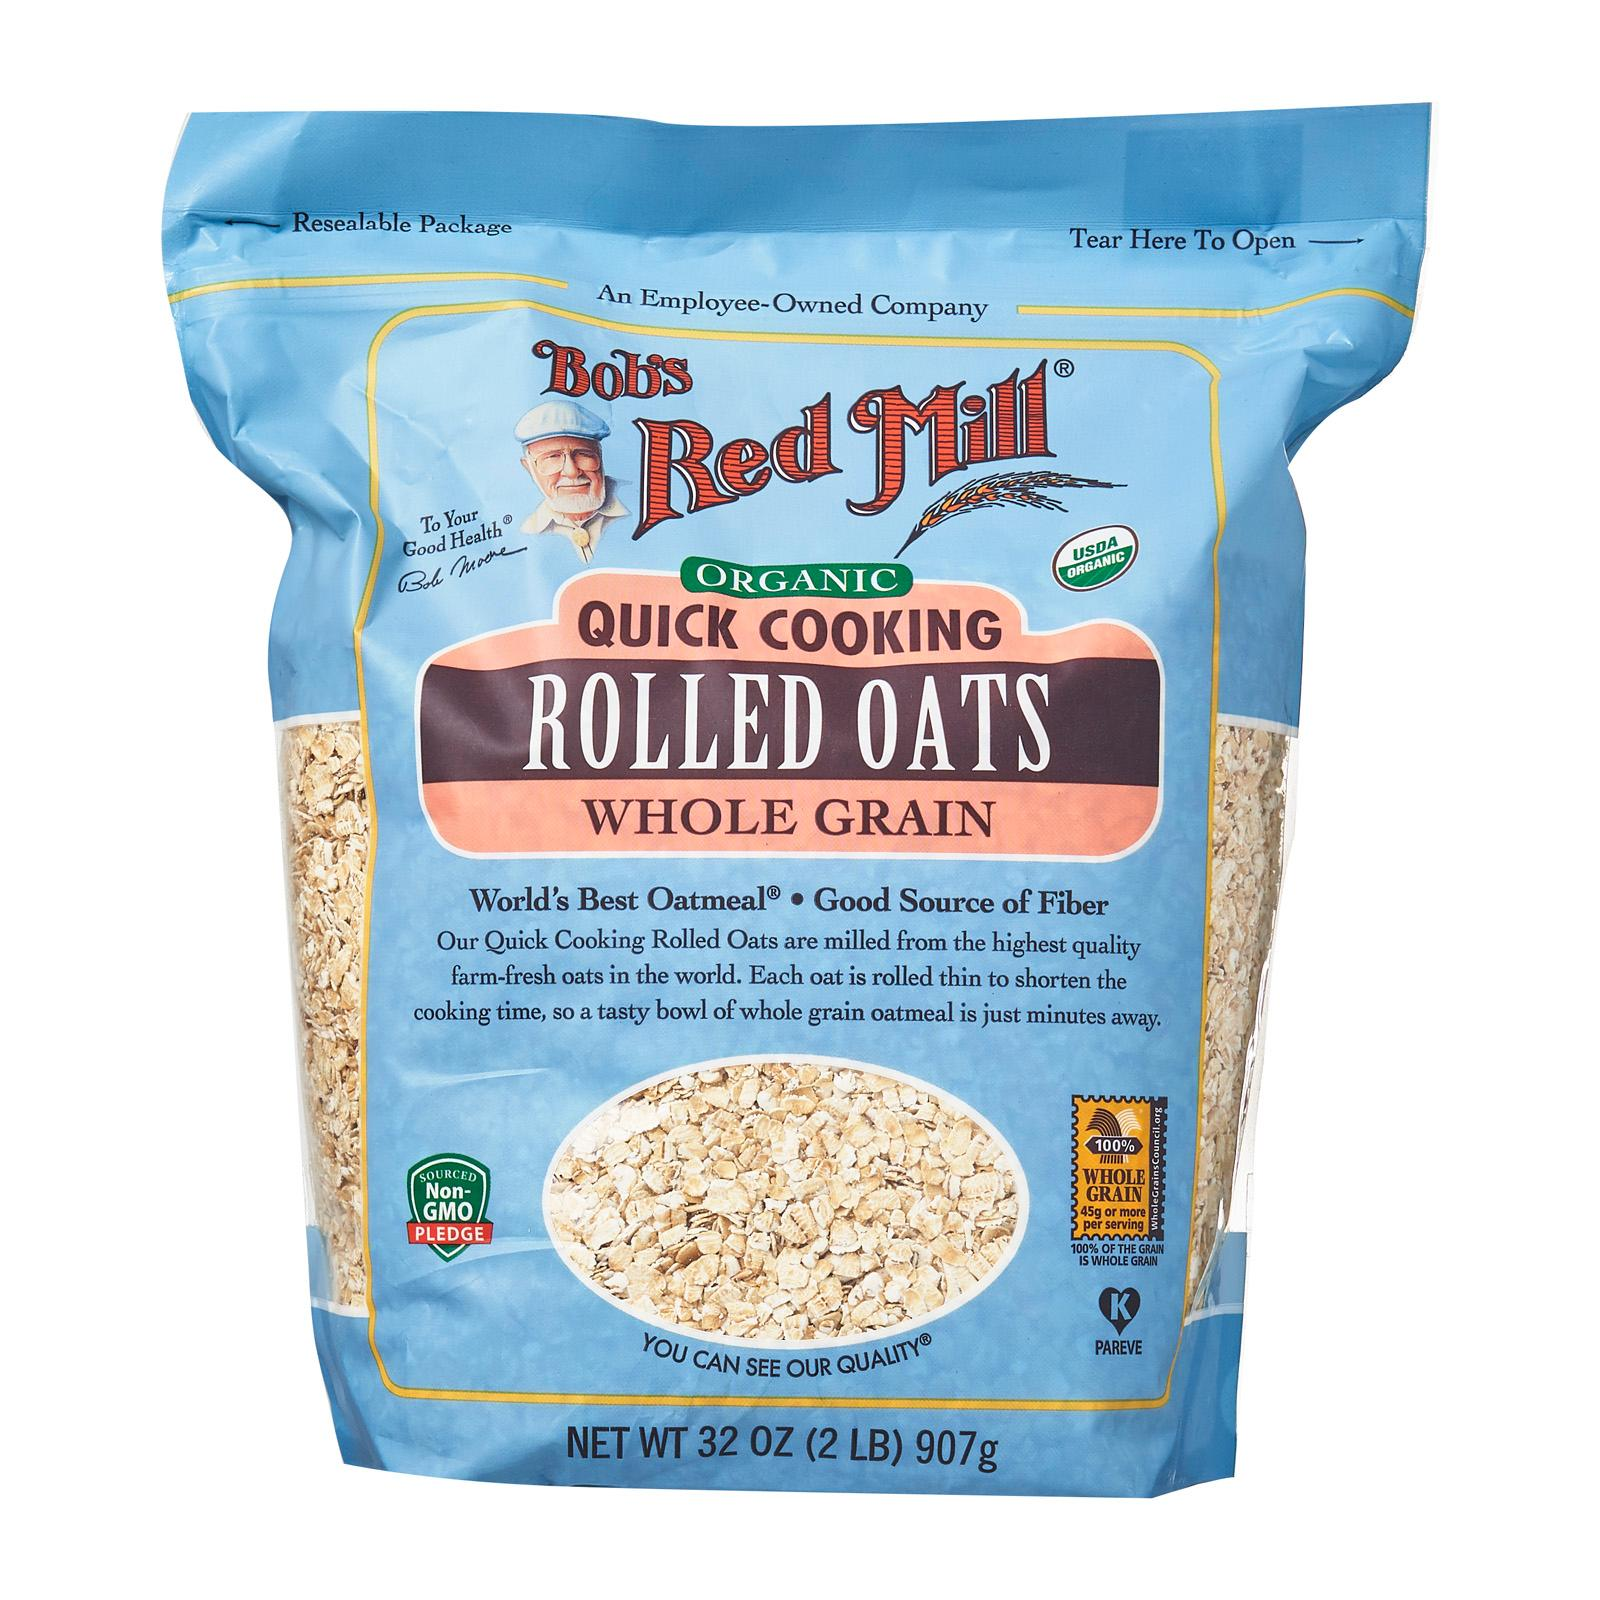 Bob's Red Mill Organic Rolled Quick Cooking Whole Grain Oats